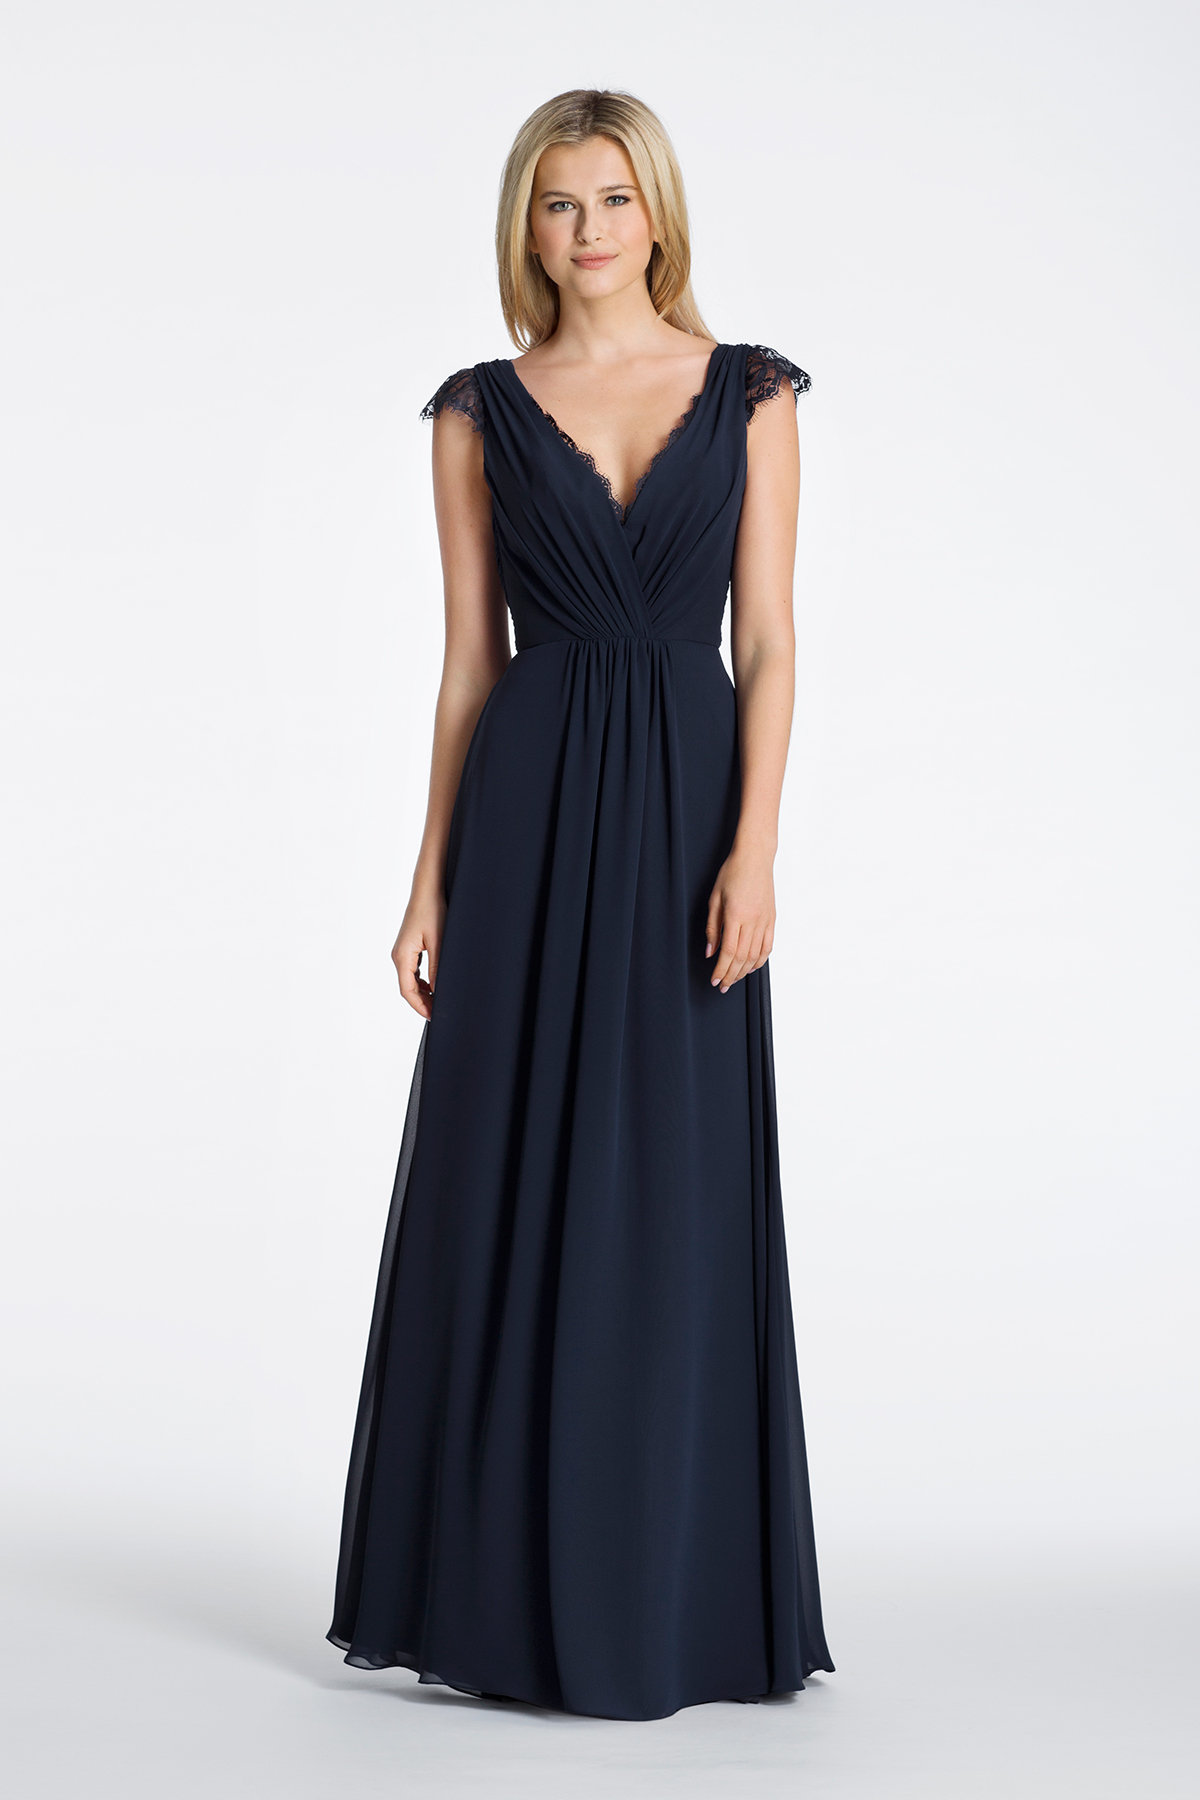 jim-hjelm-occasions-bridesmaid-chiffon-a-line-draped-v-neckline-natural-lace-trim-cap-sheer-lace-back-5600_x7